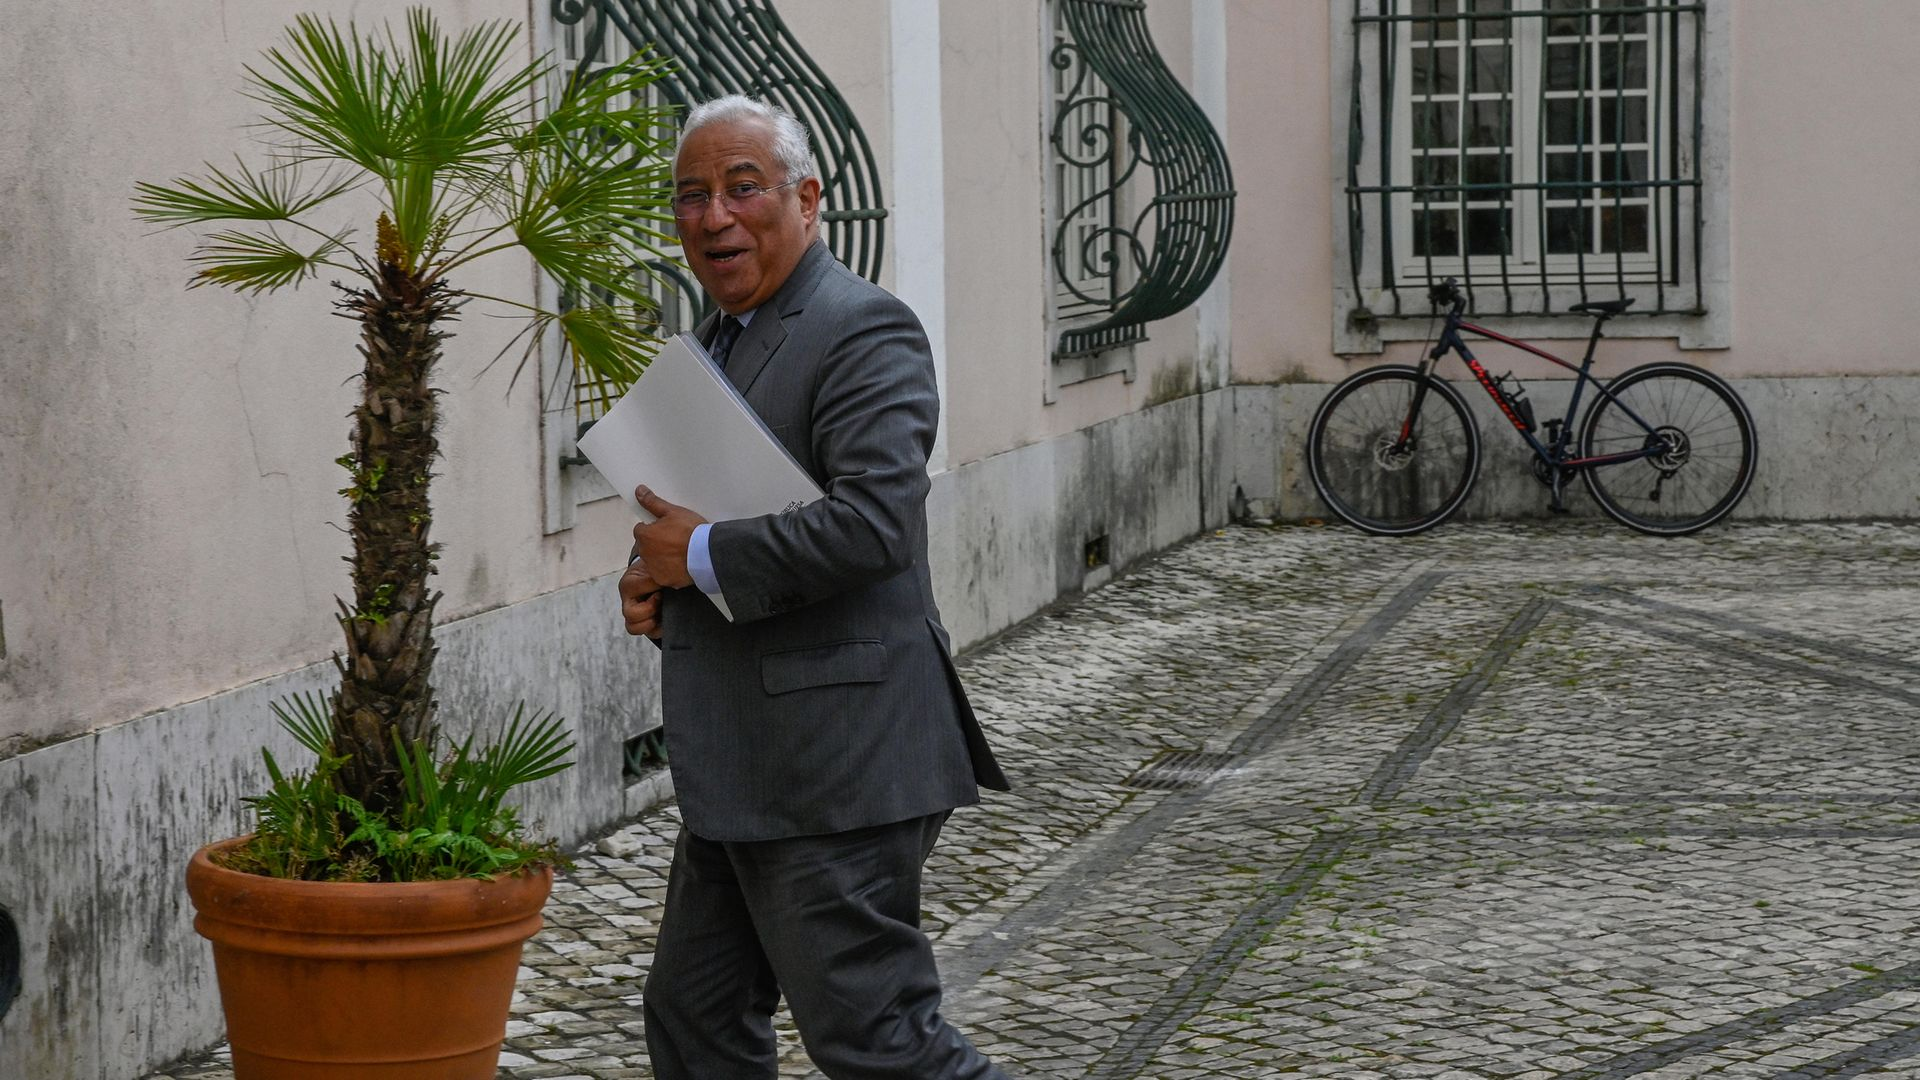 Portuguese PM Antonio Costa arriving at a meeting to discuss Covid-19 in March 2020 - Credit: Corbis via Getty Images